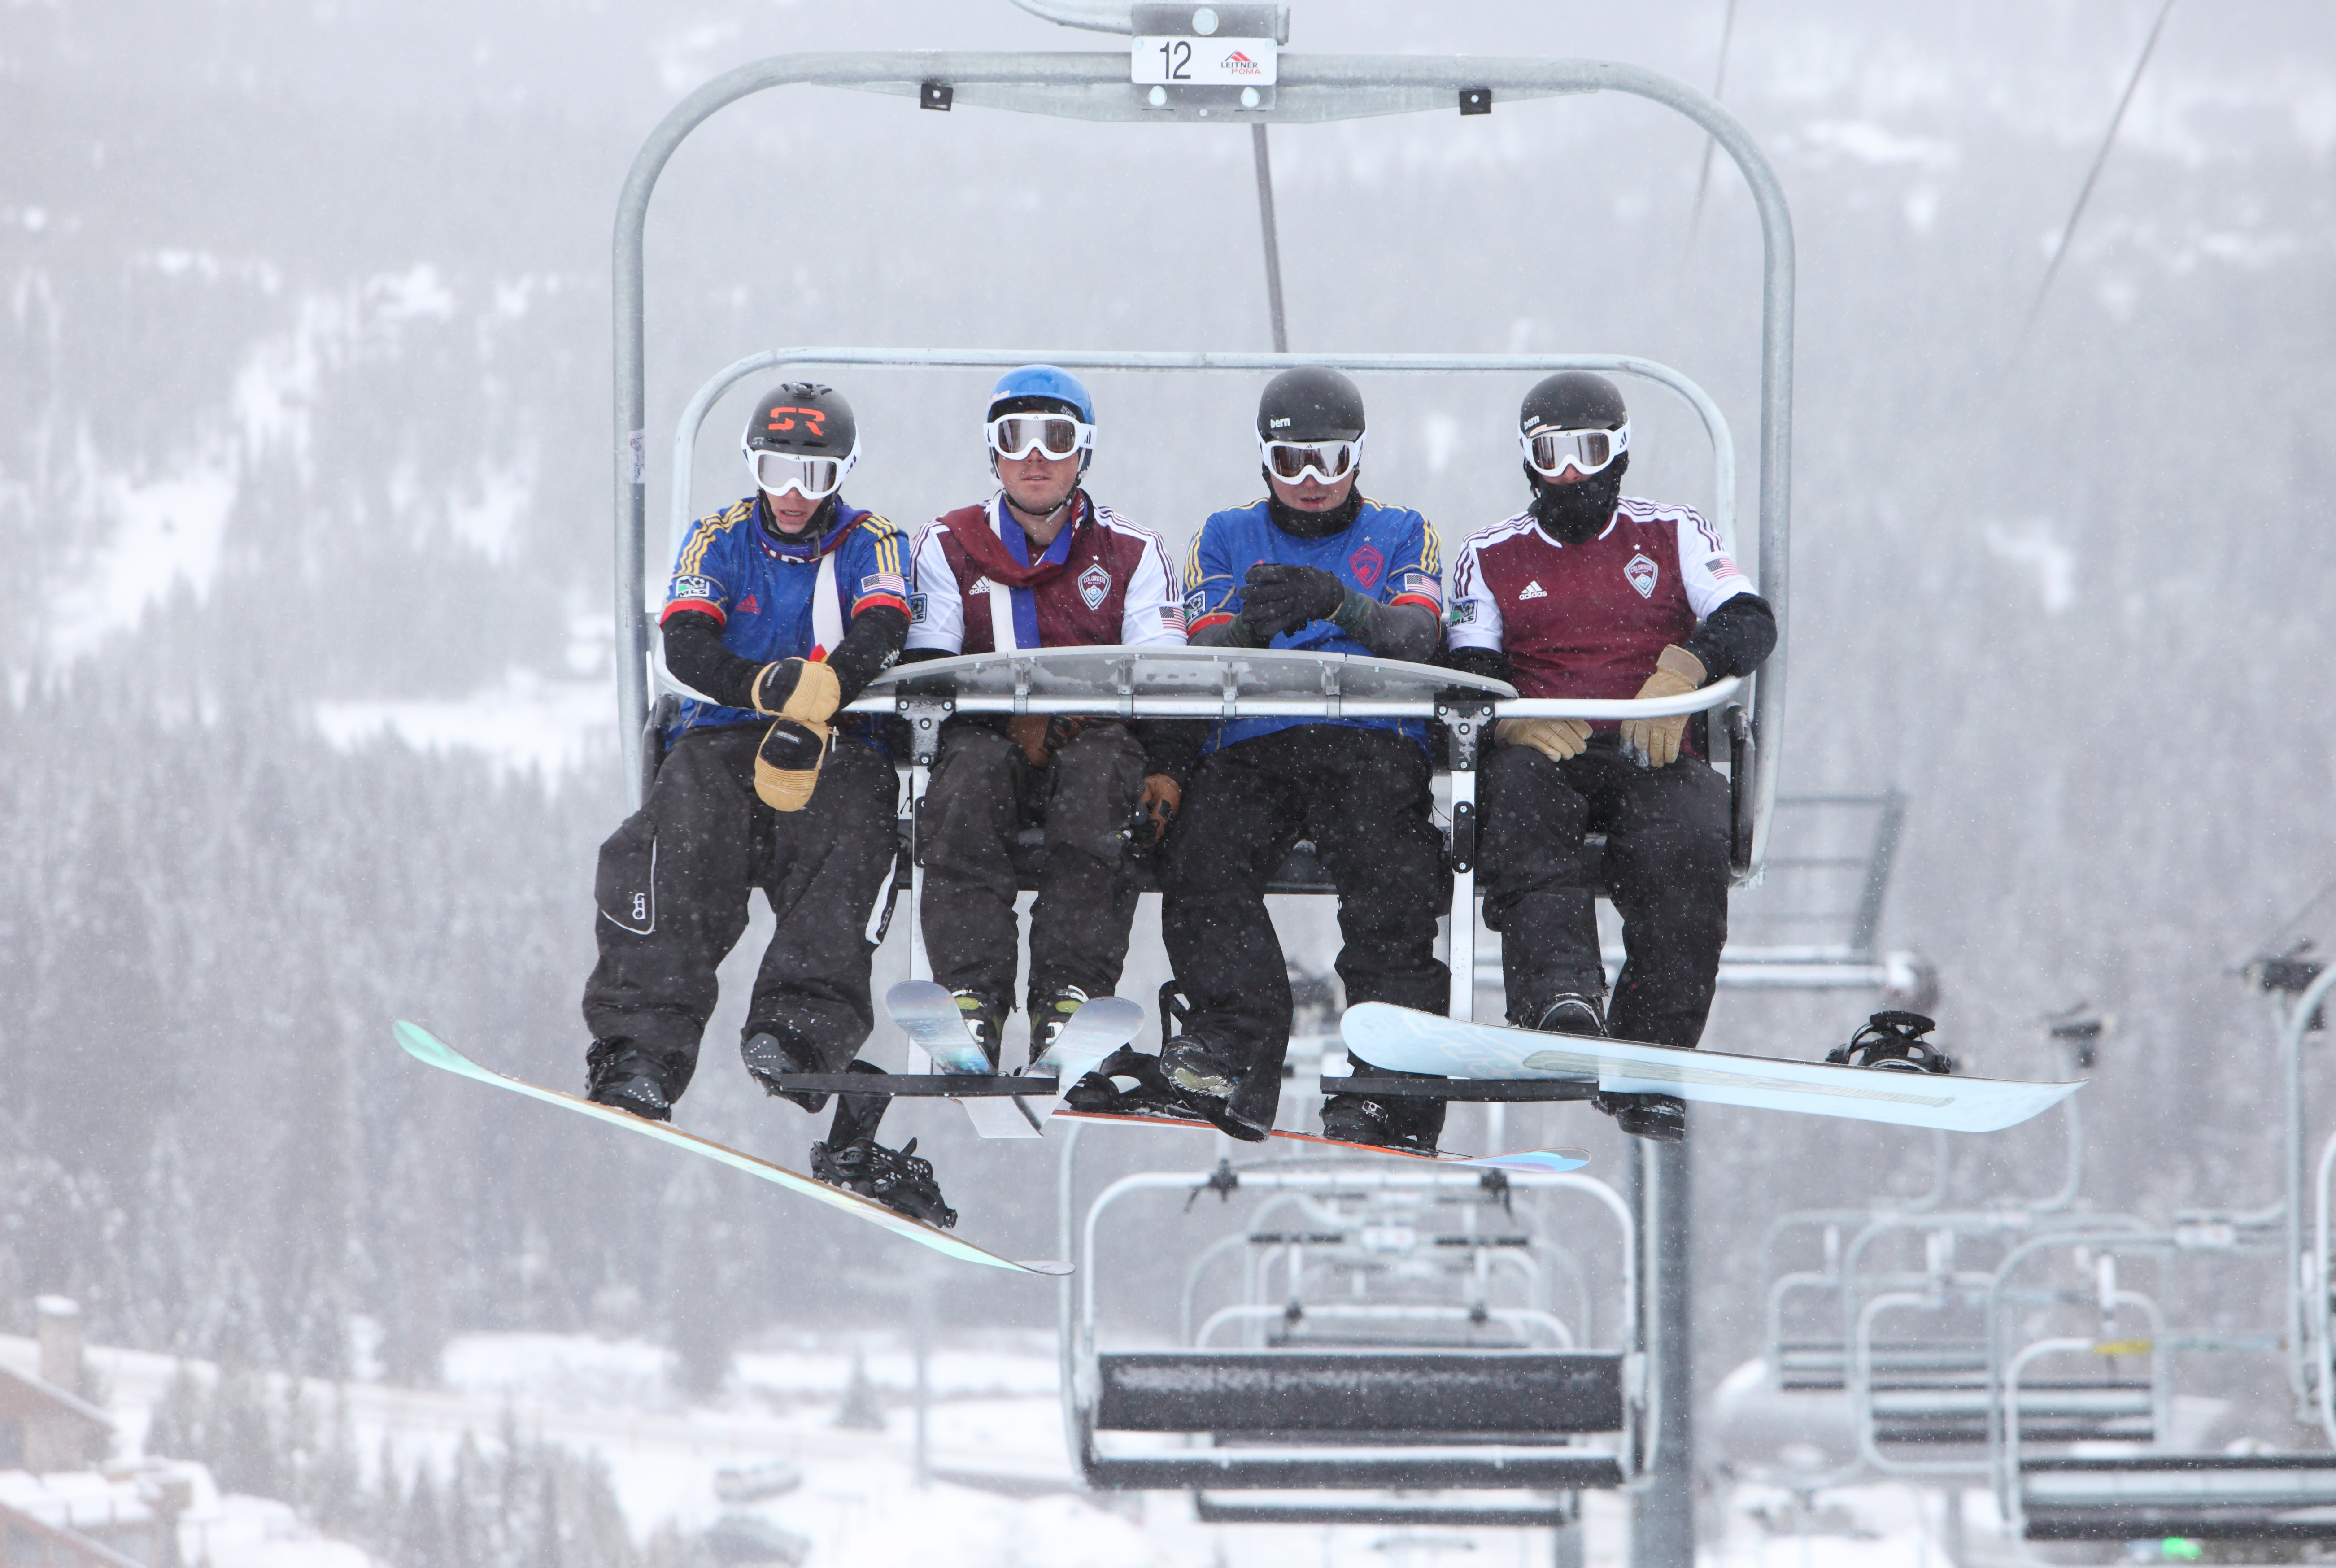 Colorado Rapids Jerseys revealed at Breck